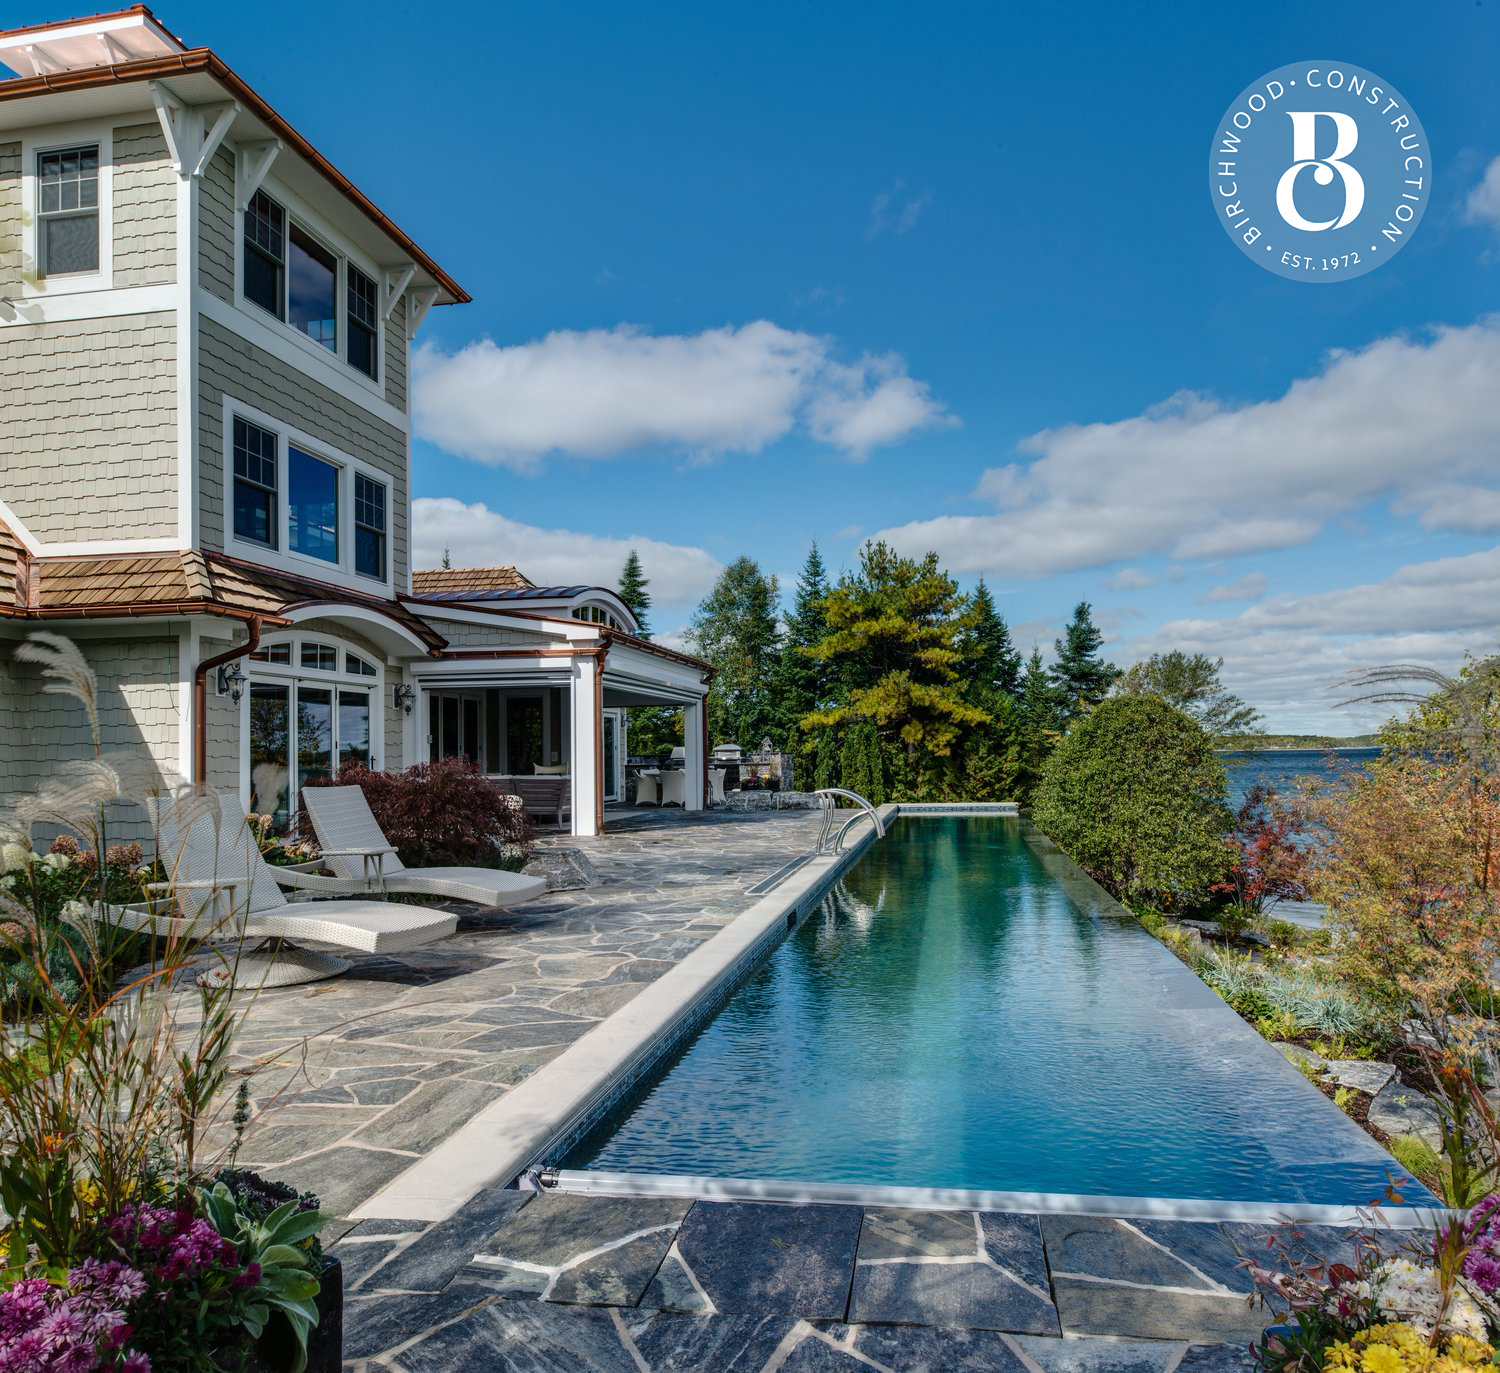 The best custom home construction and remodeling in Northern Michigan featuring a beachfront infinity pool and outdoor space